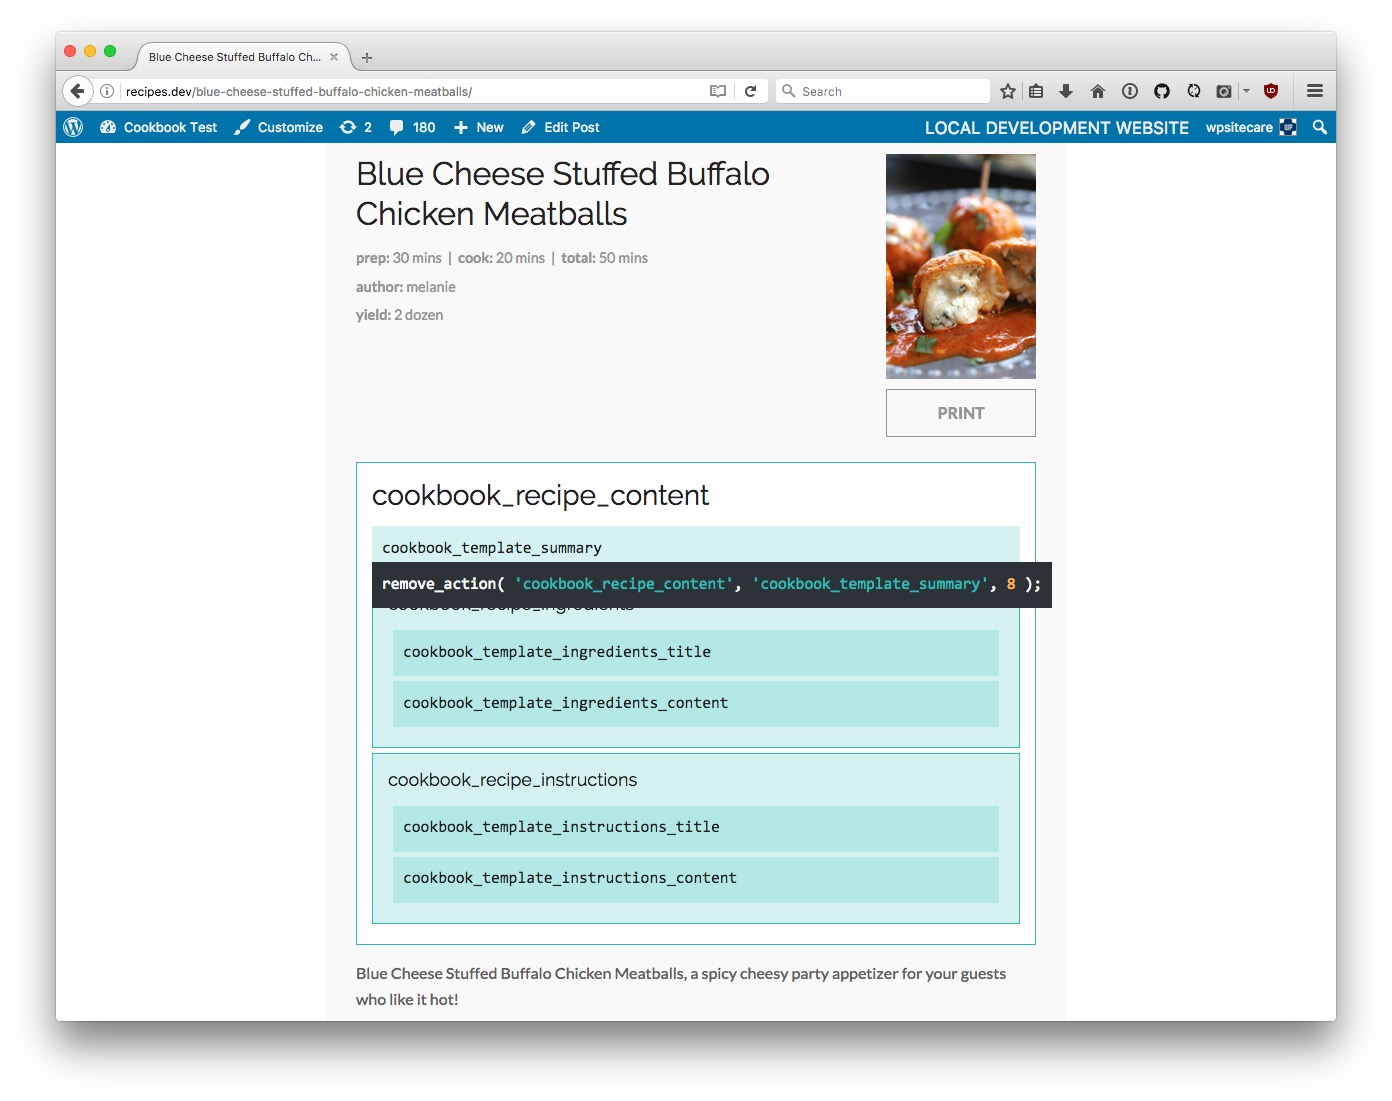 Cookbook Recipe View with Hook Guide Enabled.